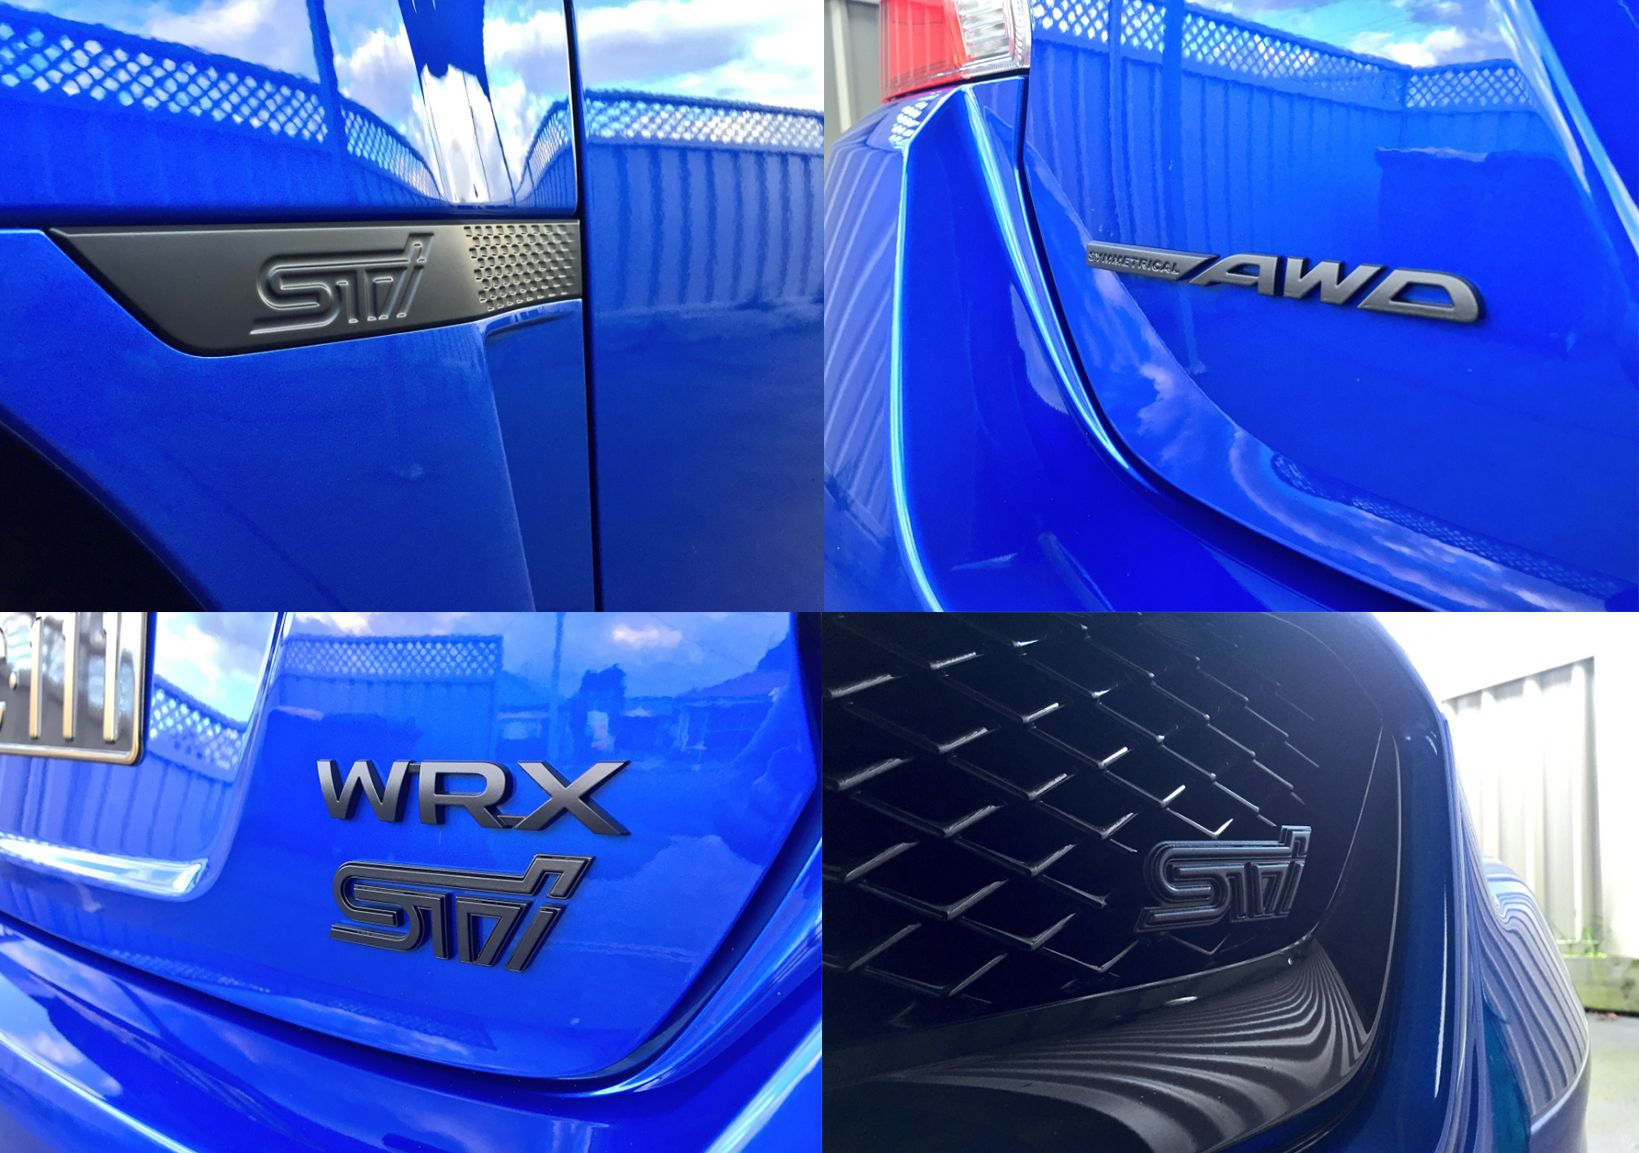 Is Your Car Feeling Blue? Spice Things Up With Plasti Dip